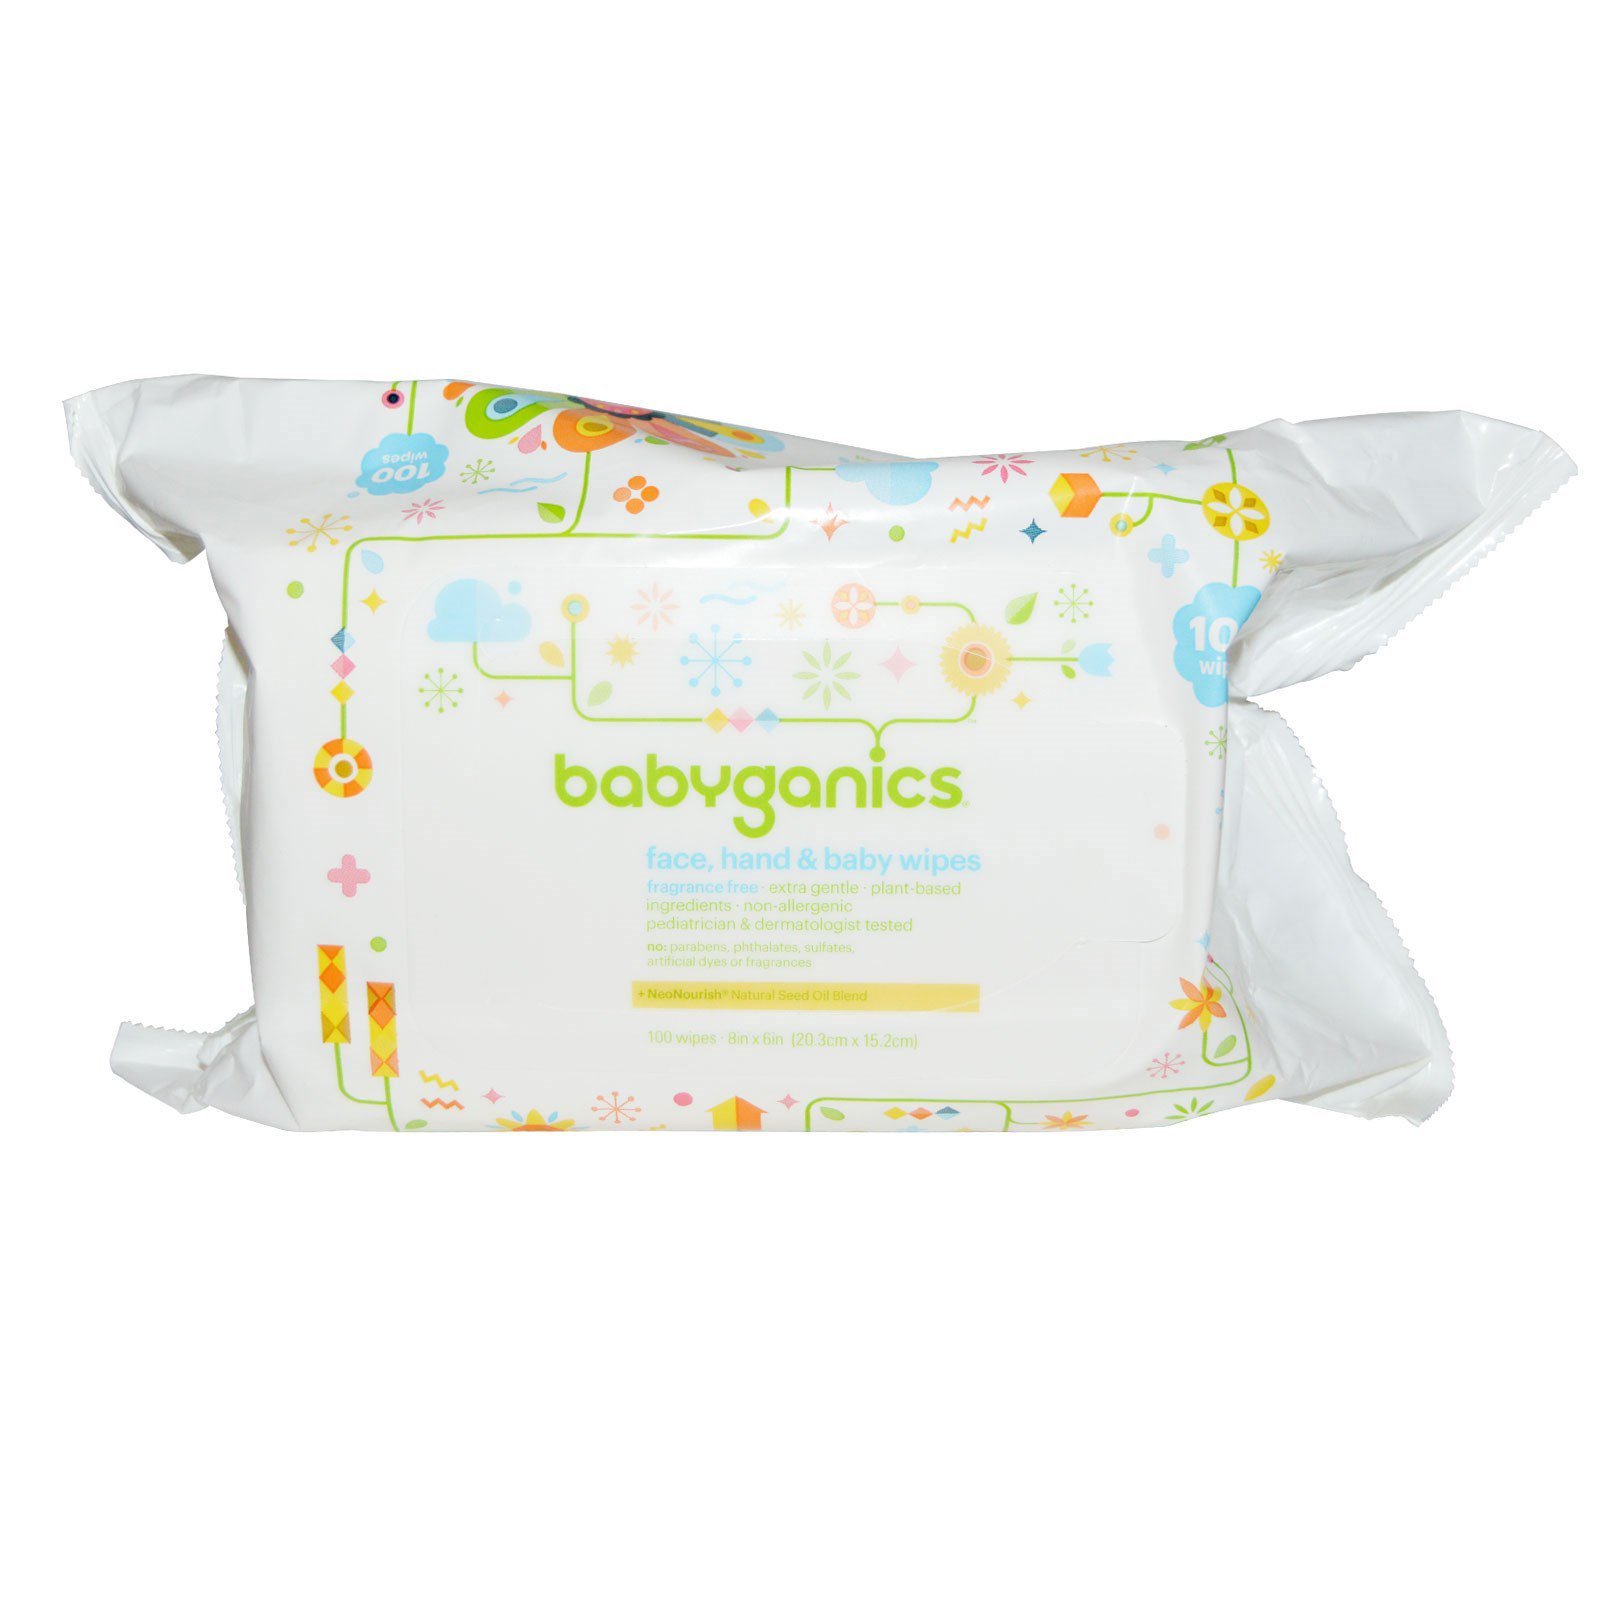 Contains Six 100-Count Packs Packaging May Vary Babyganics Face 600 Count Hand /& Baby Wipes Fragrance Free